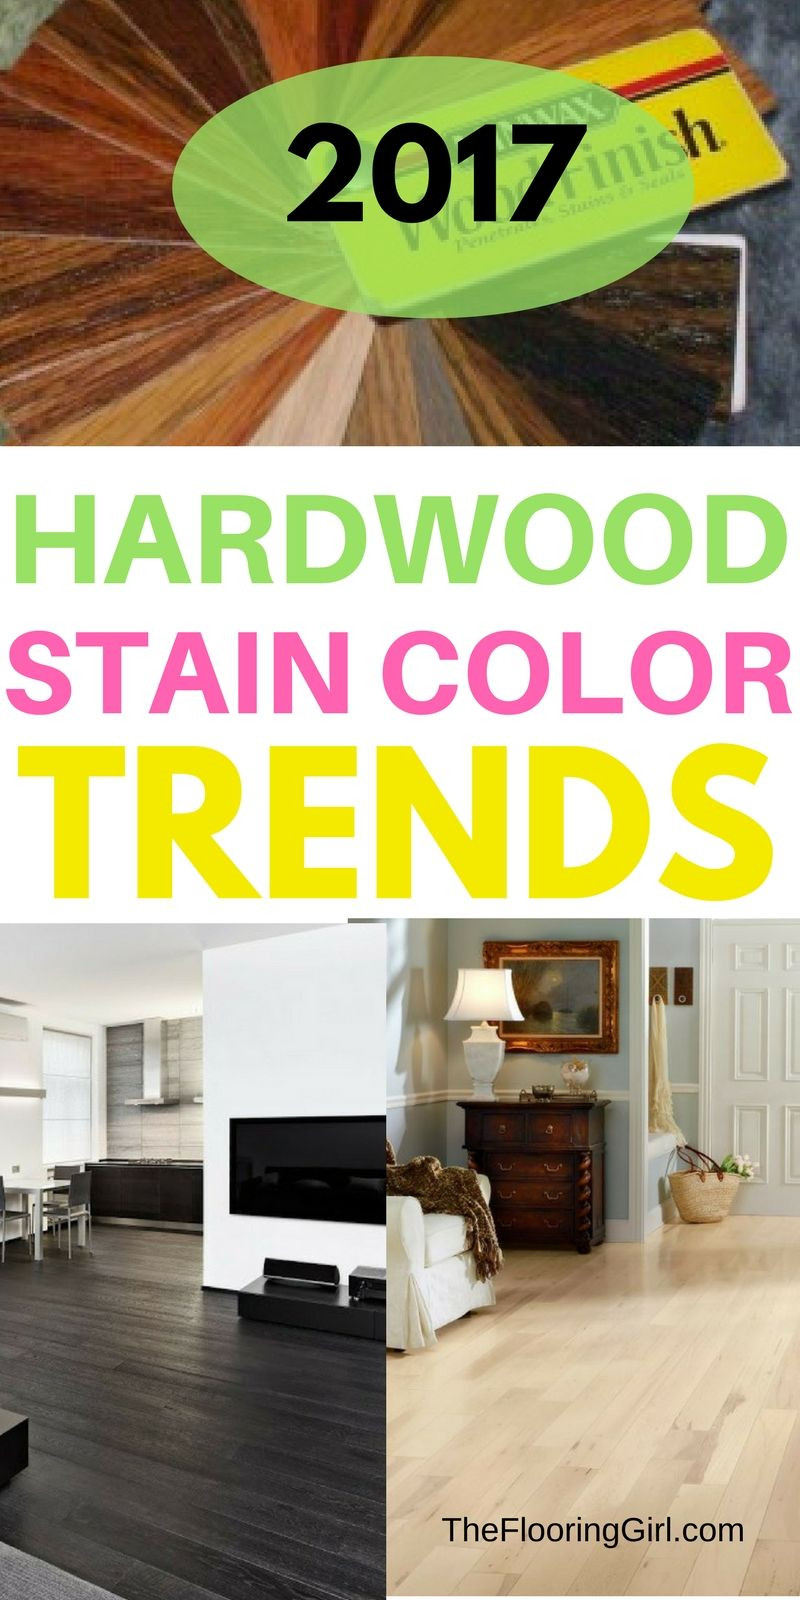 hardwood flooring chicago area of hardwood flooring stain color trends 2018 more from the flooring for hardwood flooring stain color trends for 2017 hardwood colors that are in style theflooringgirl com